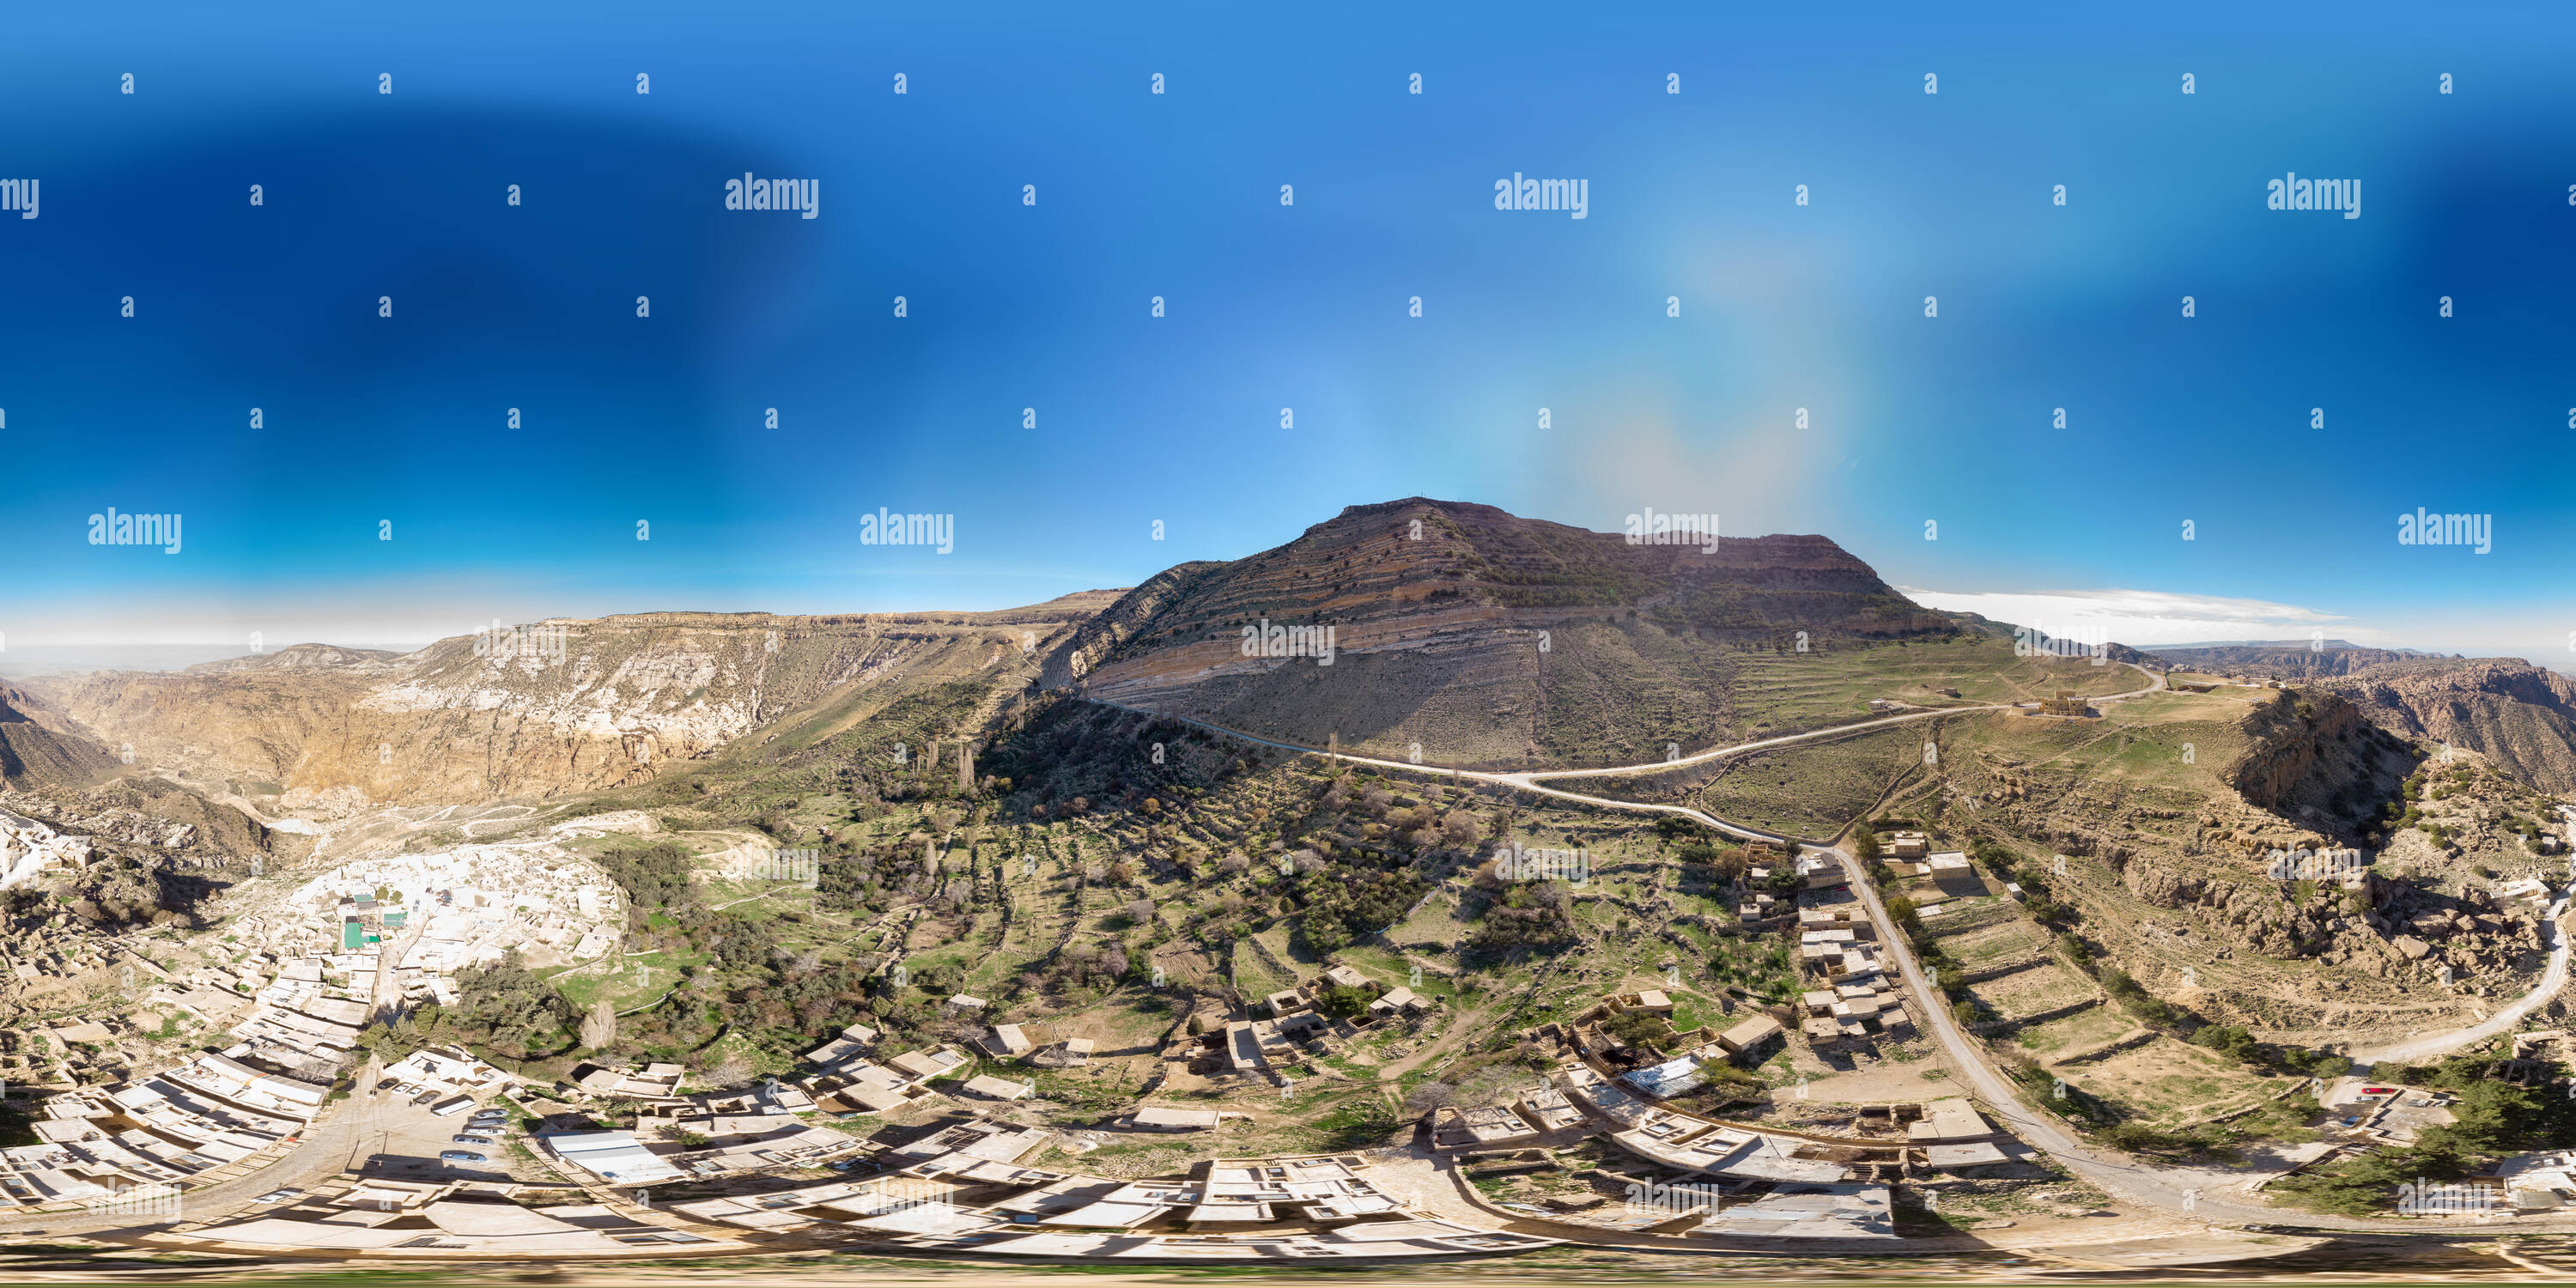 Spherical 360 degree panorama from the edge of the village Dana at Dana Nature Reserve, Jordan, taken with the drone from the air. - Stock Image